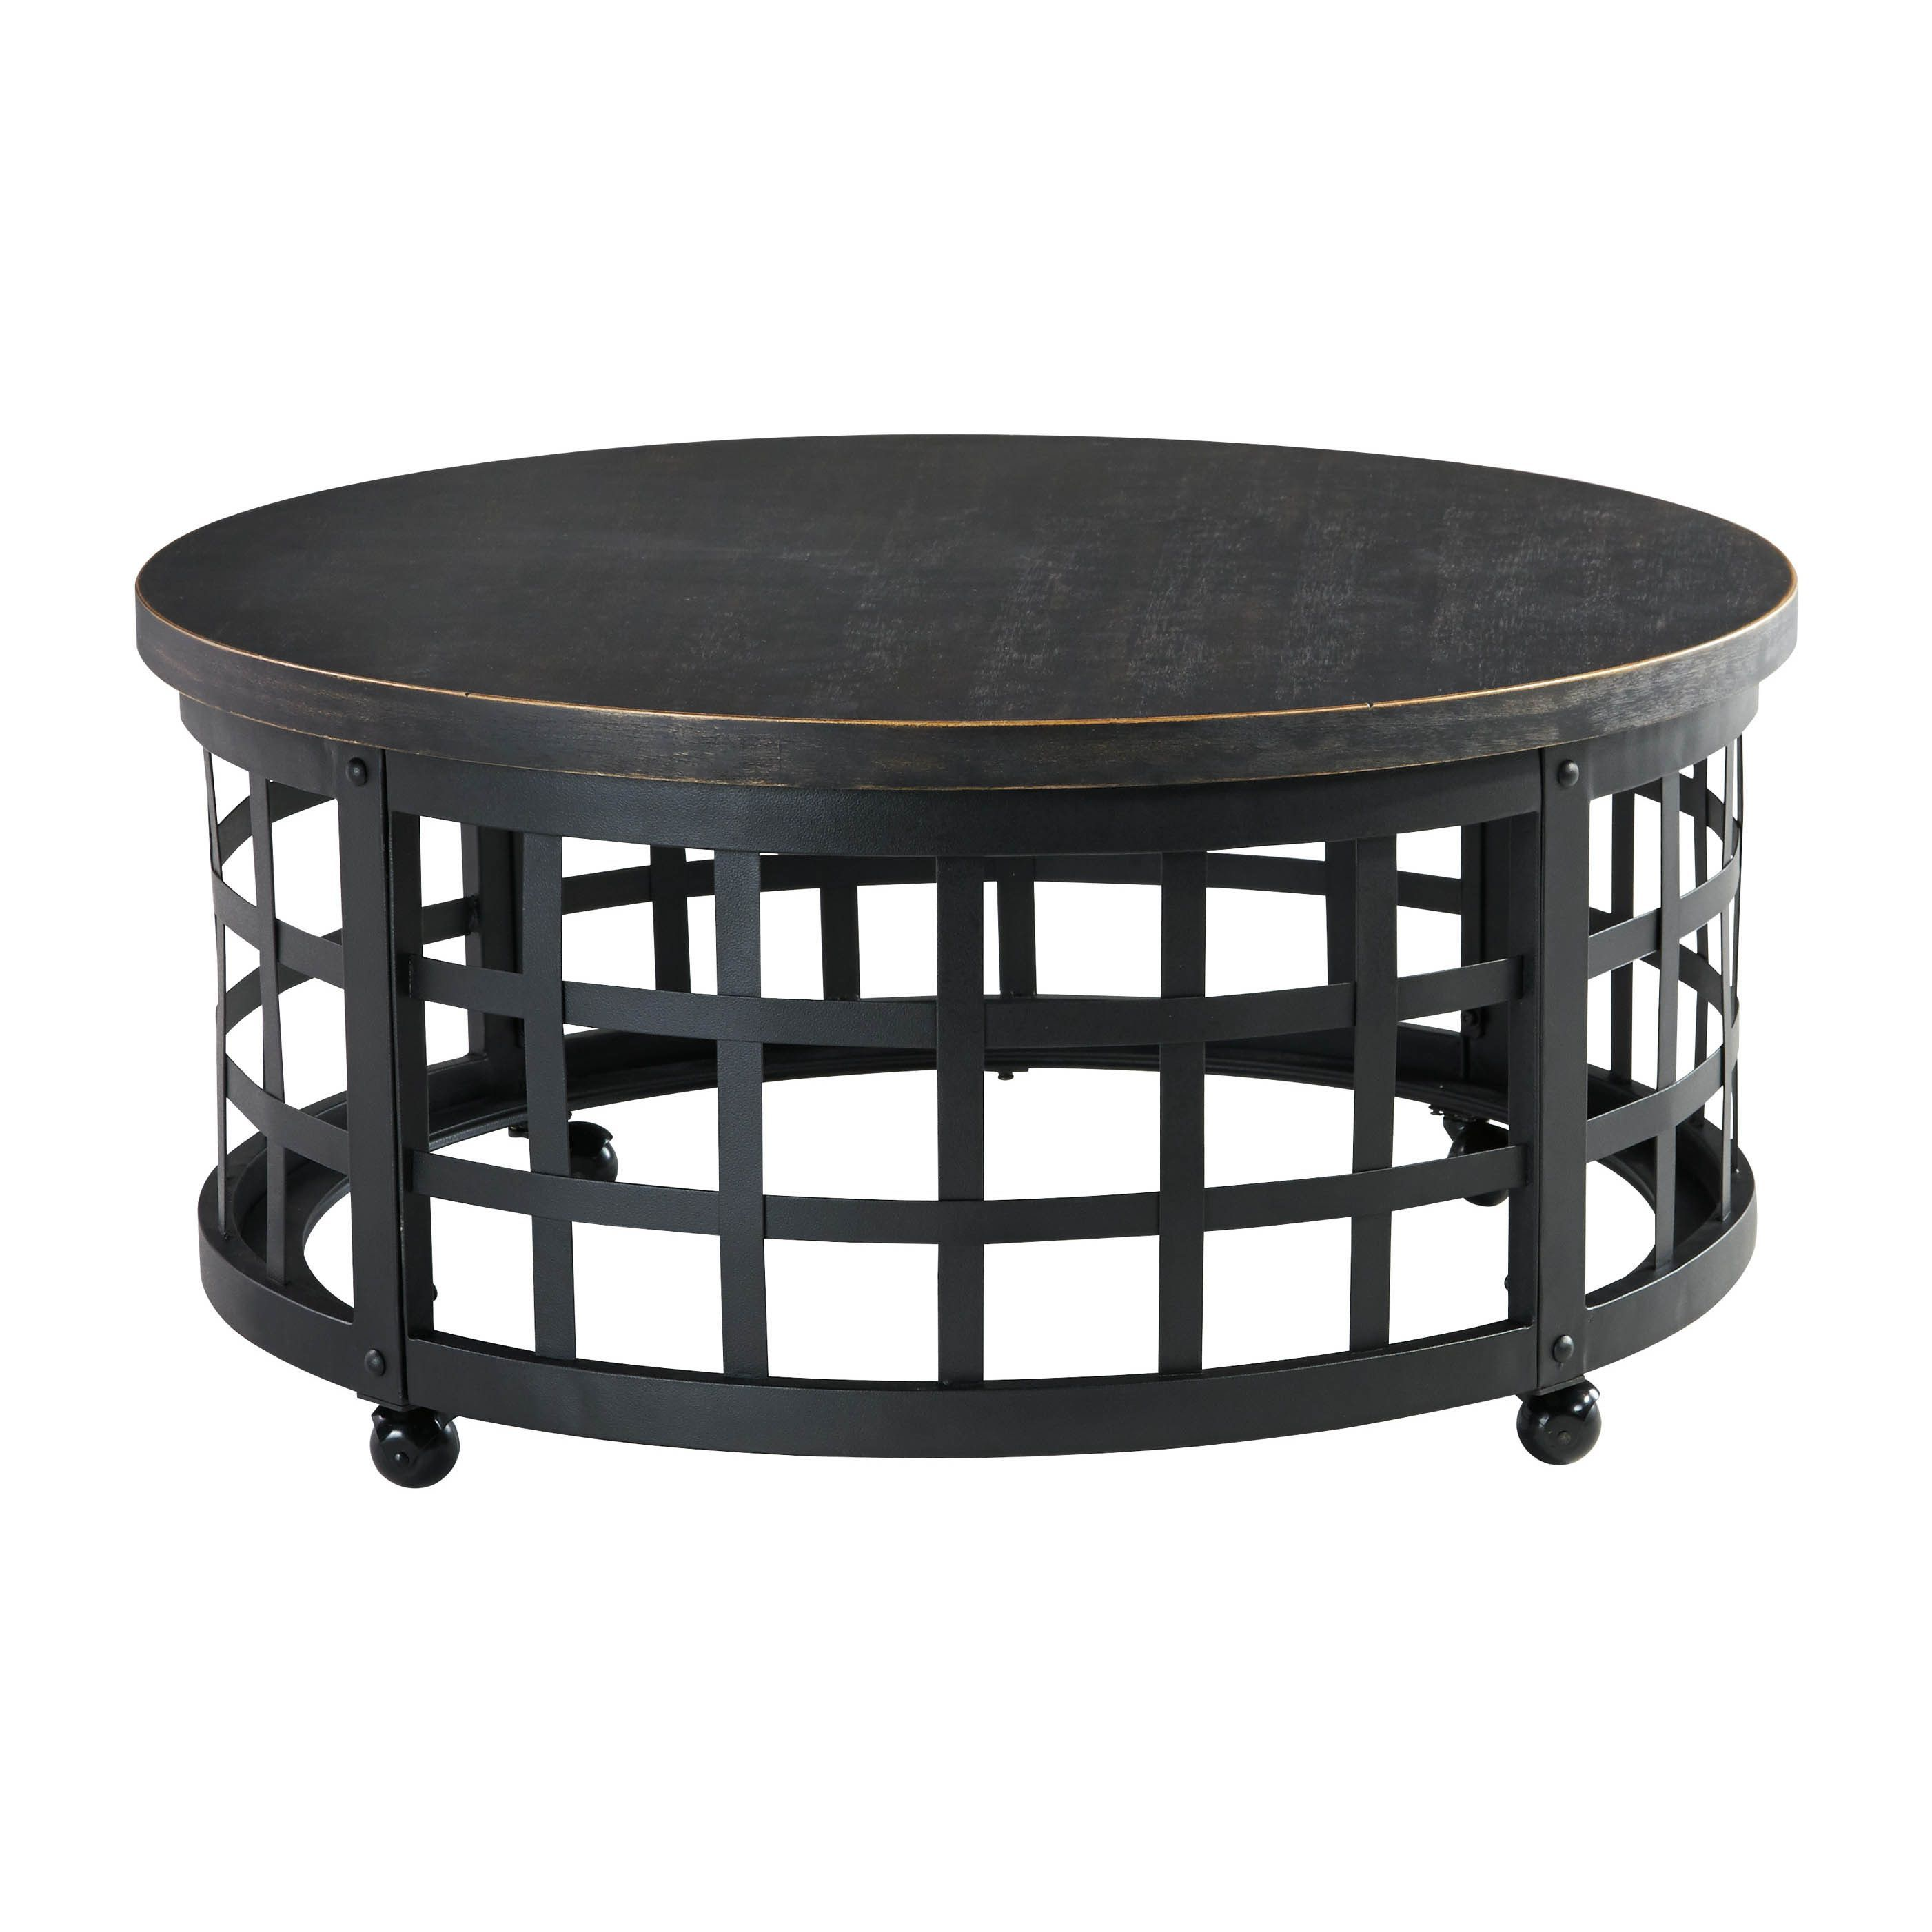 weave quite the conversation piece into your space with marimon woven metal accent table round coffee industrial basket crafted topped distressed modern sofa nautical console